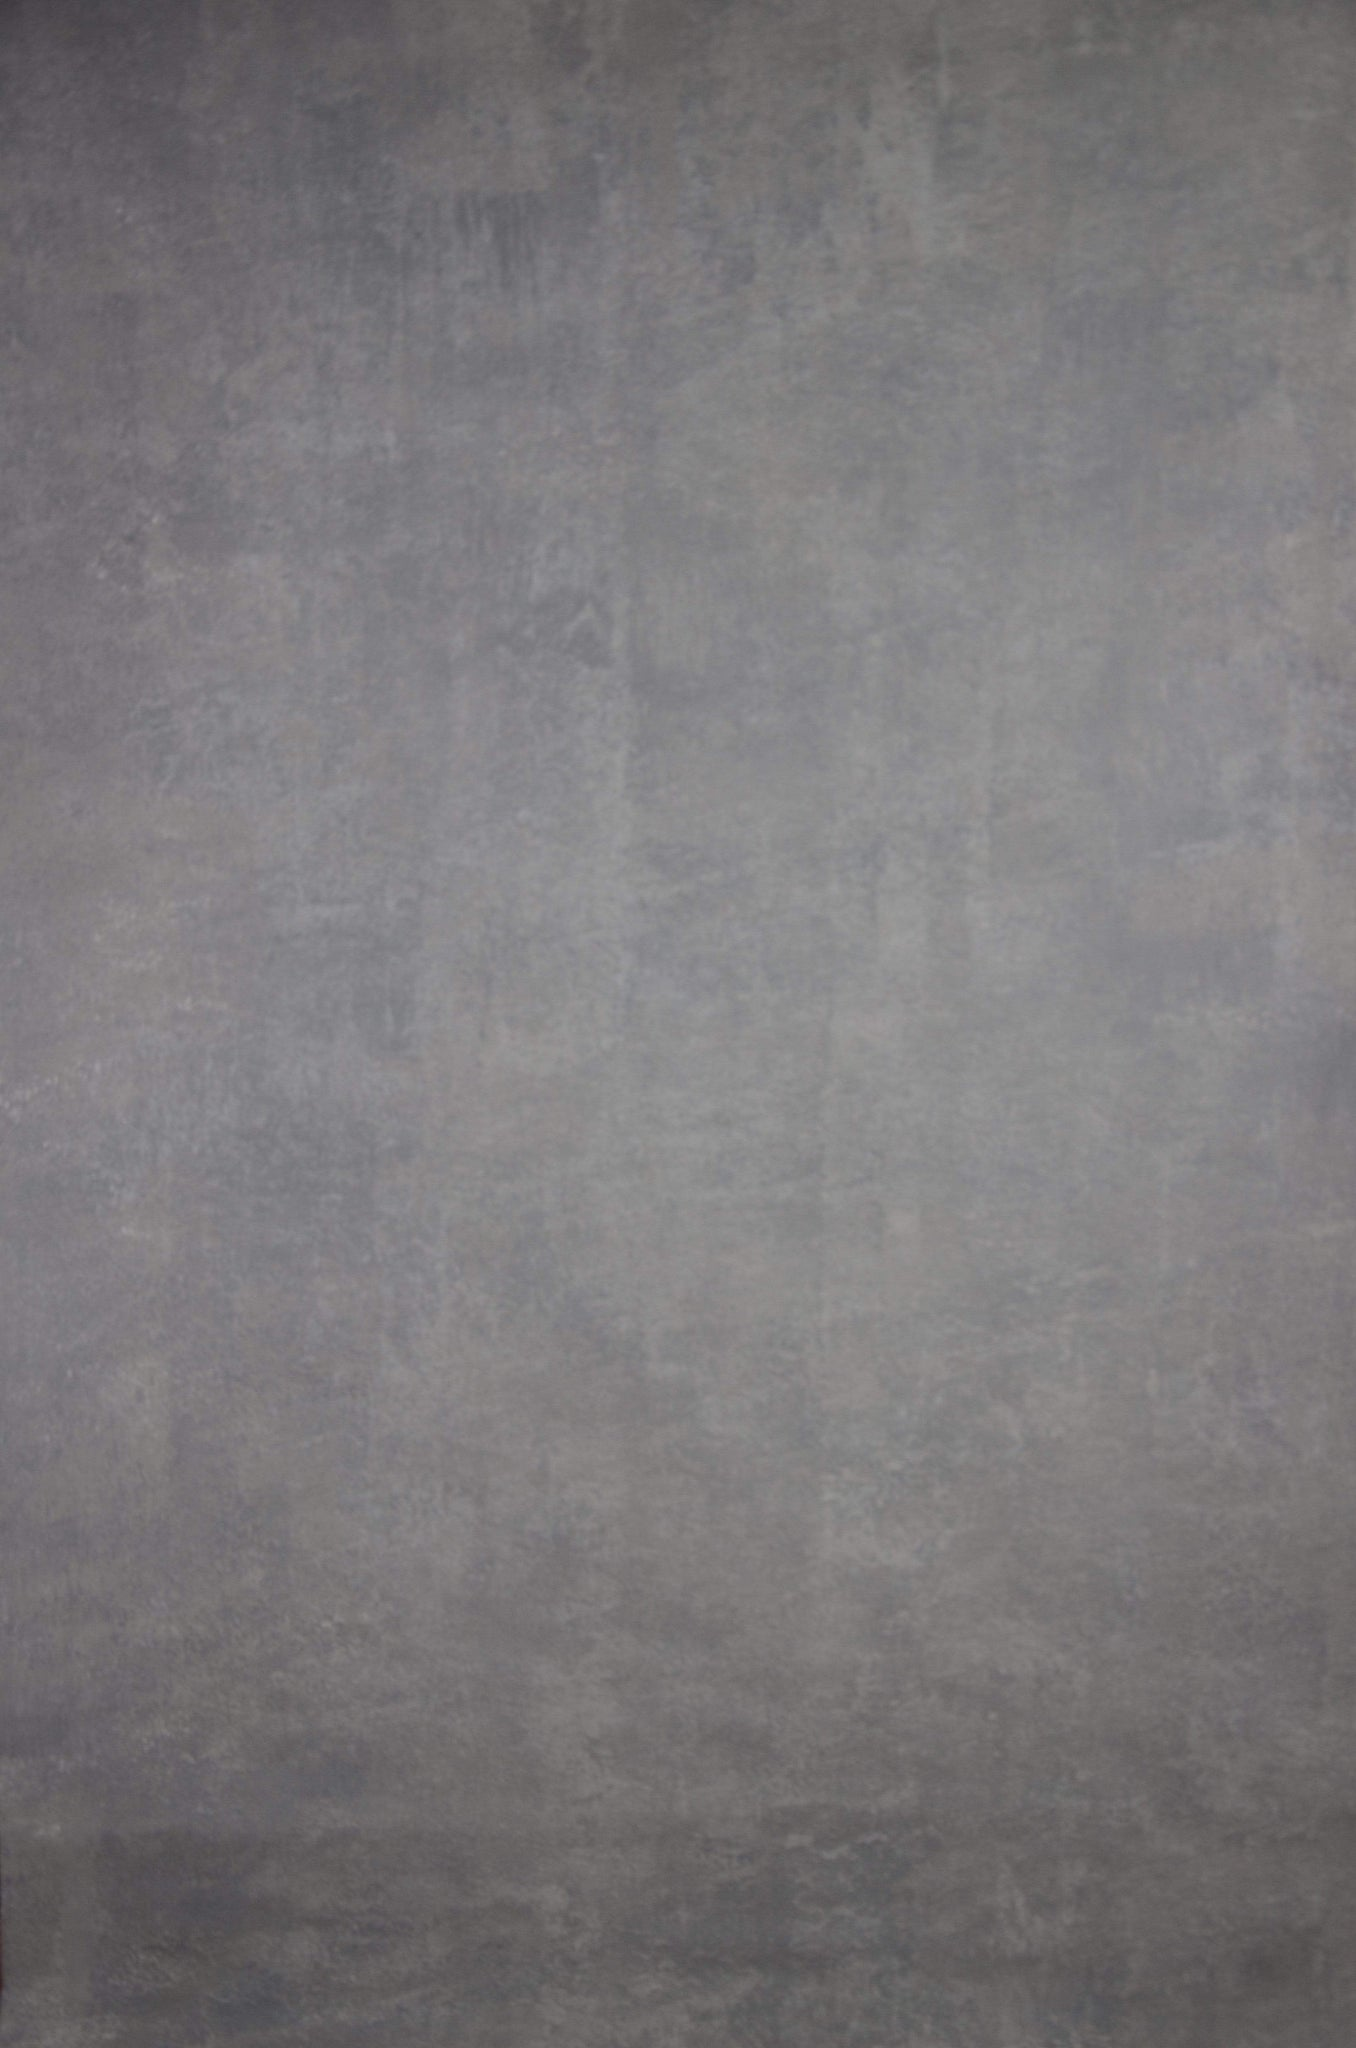 Load image into Gallery viewer, Katebackdrop£ºKate Hand Painted Cold Tones of Grey Abstract Texture Backdrops